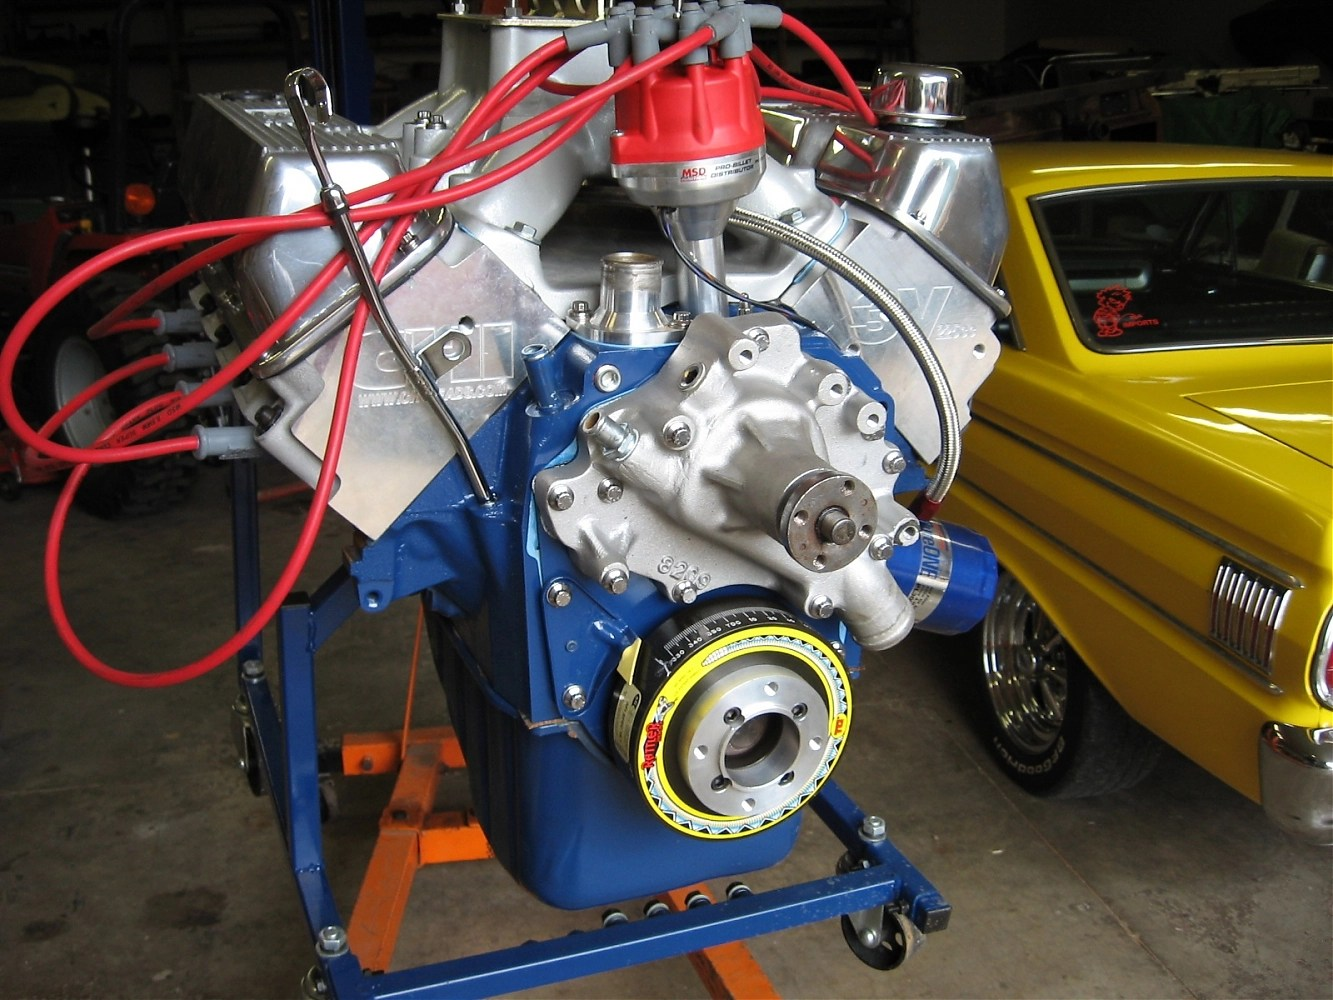 hight resolution of clapper starter fits clevland transmission 1995 ford windsor 351 set timing the free service manual 351cubic inch engines both offered horsepower until